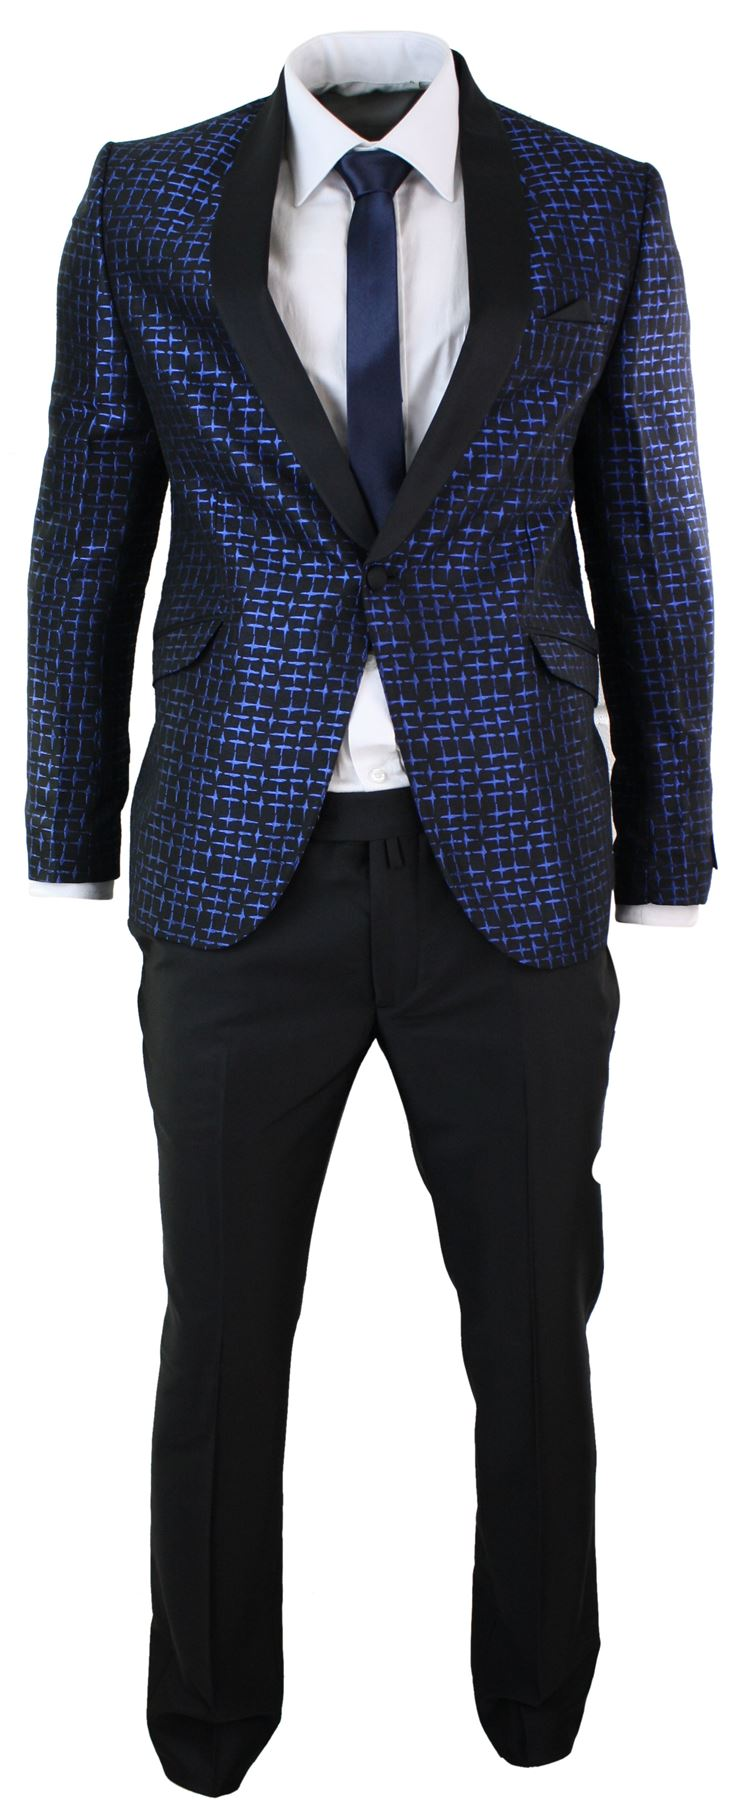 Suits Outlets features a variety of slim-fit suits: big and tall, short slim suits, % Money Back Guarantee· Free Domestic Shipping· Exclusive Wholesale PriceStyles: 3 Piece Suits, 2 Piece Suits, Big & Tall Suits, Regular Fit Suits.